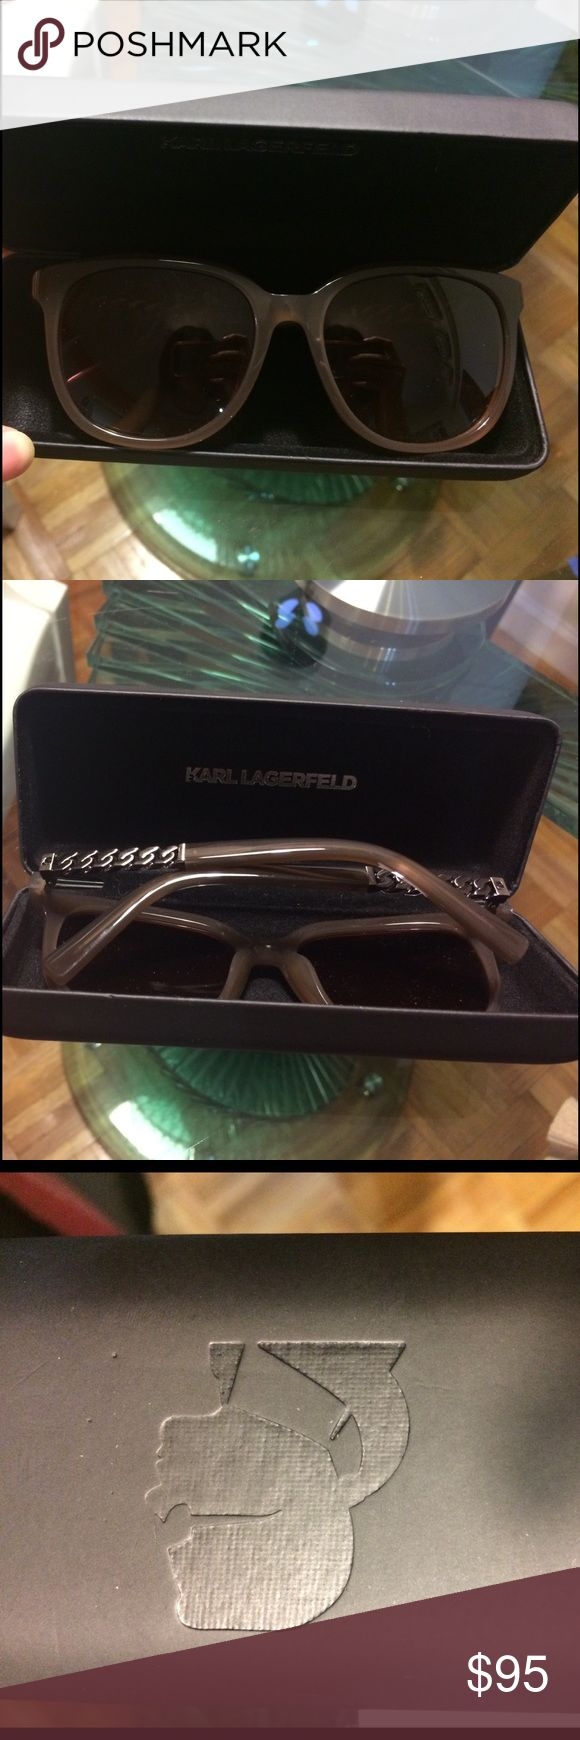 Karl Lagerfeld Sunglasses Karl Lagerfeld Sunglasses (model KL 862) - Havana Color Karl Lagerfeld Accessories Sunglasses